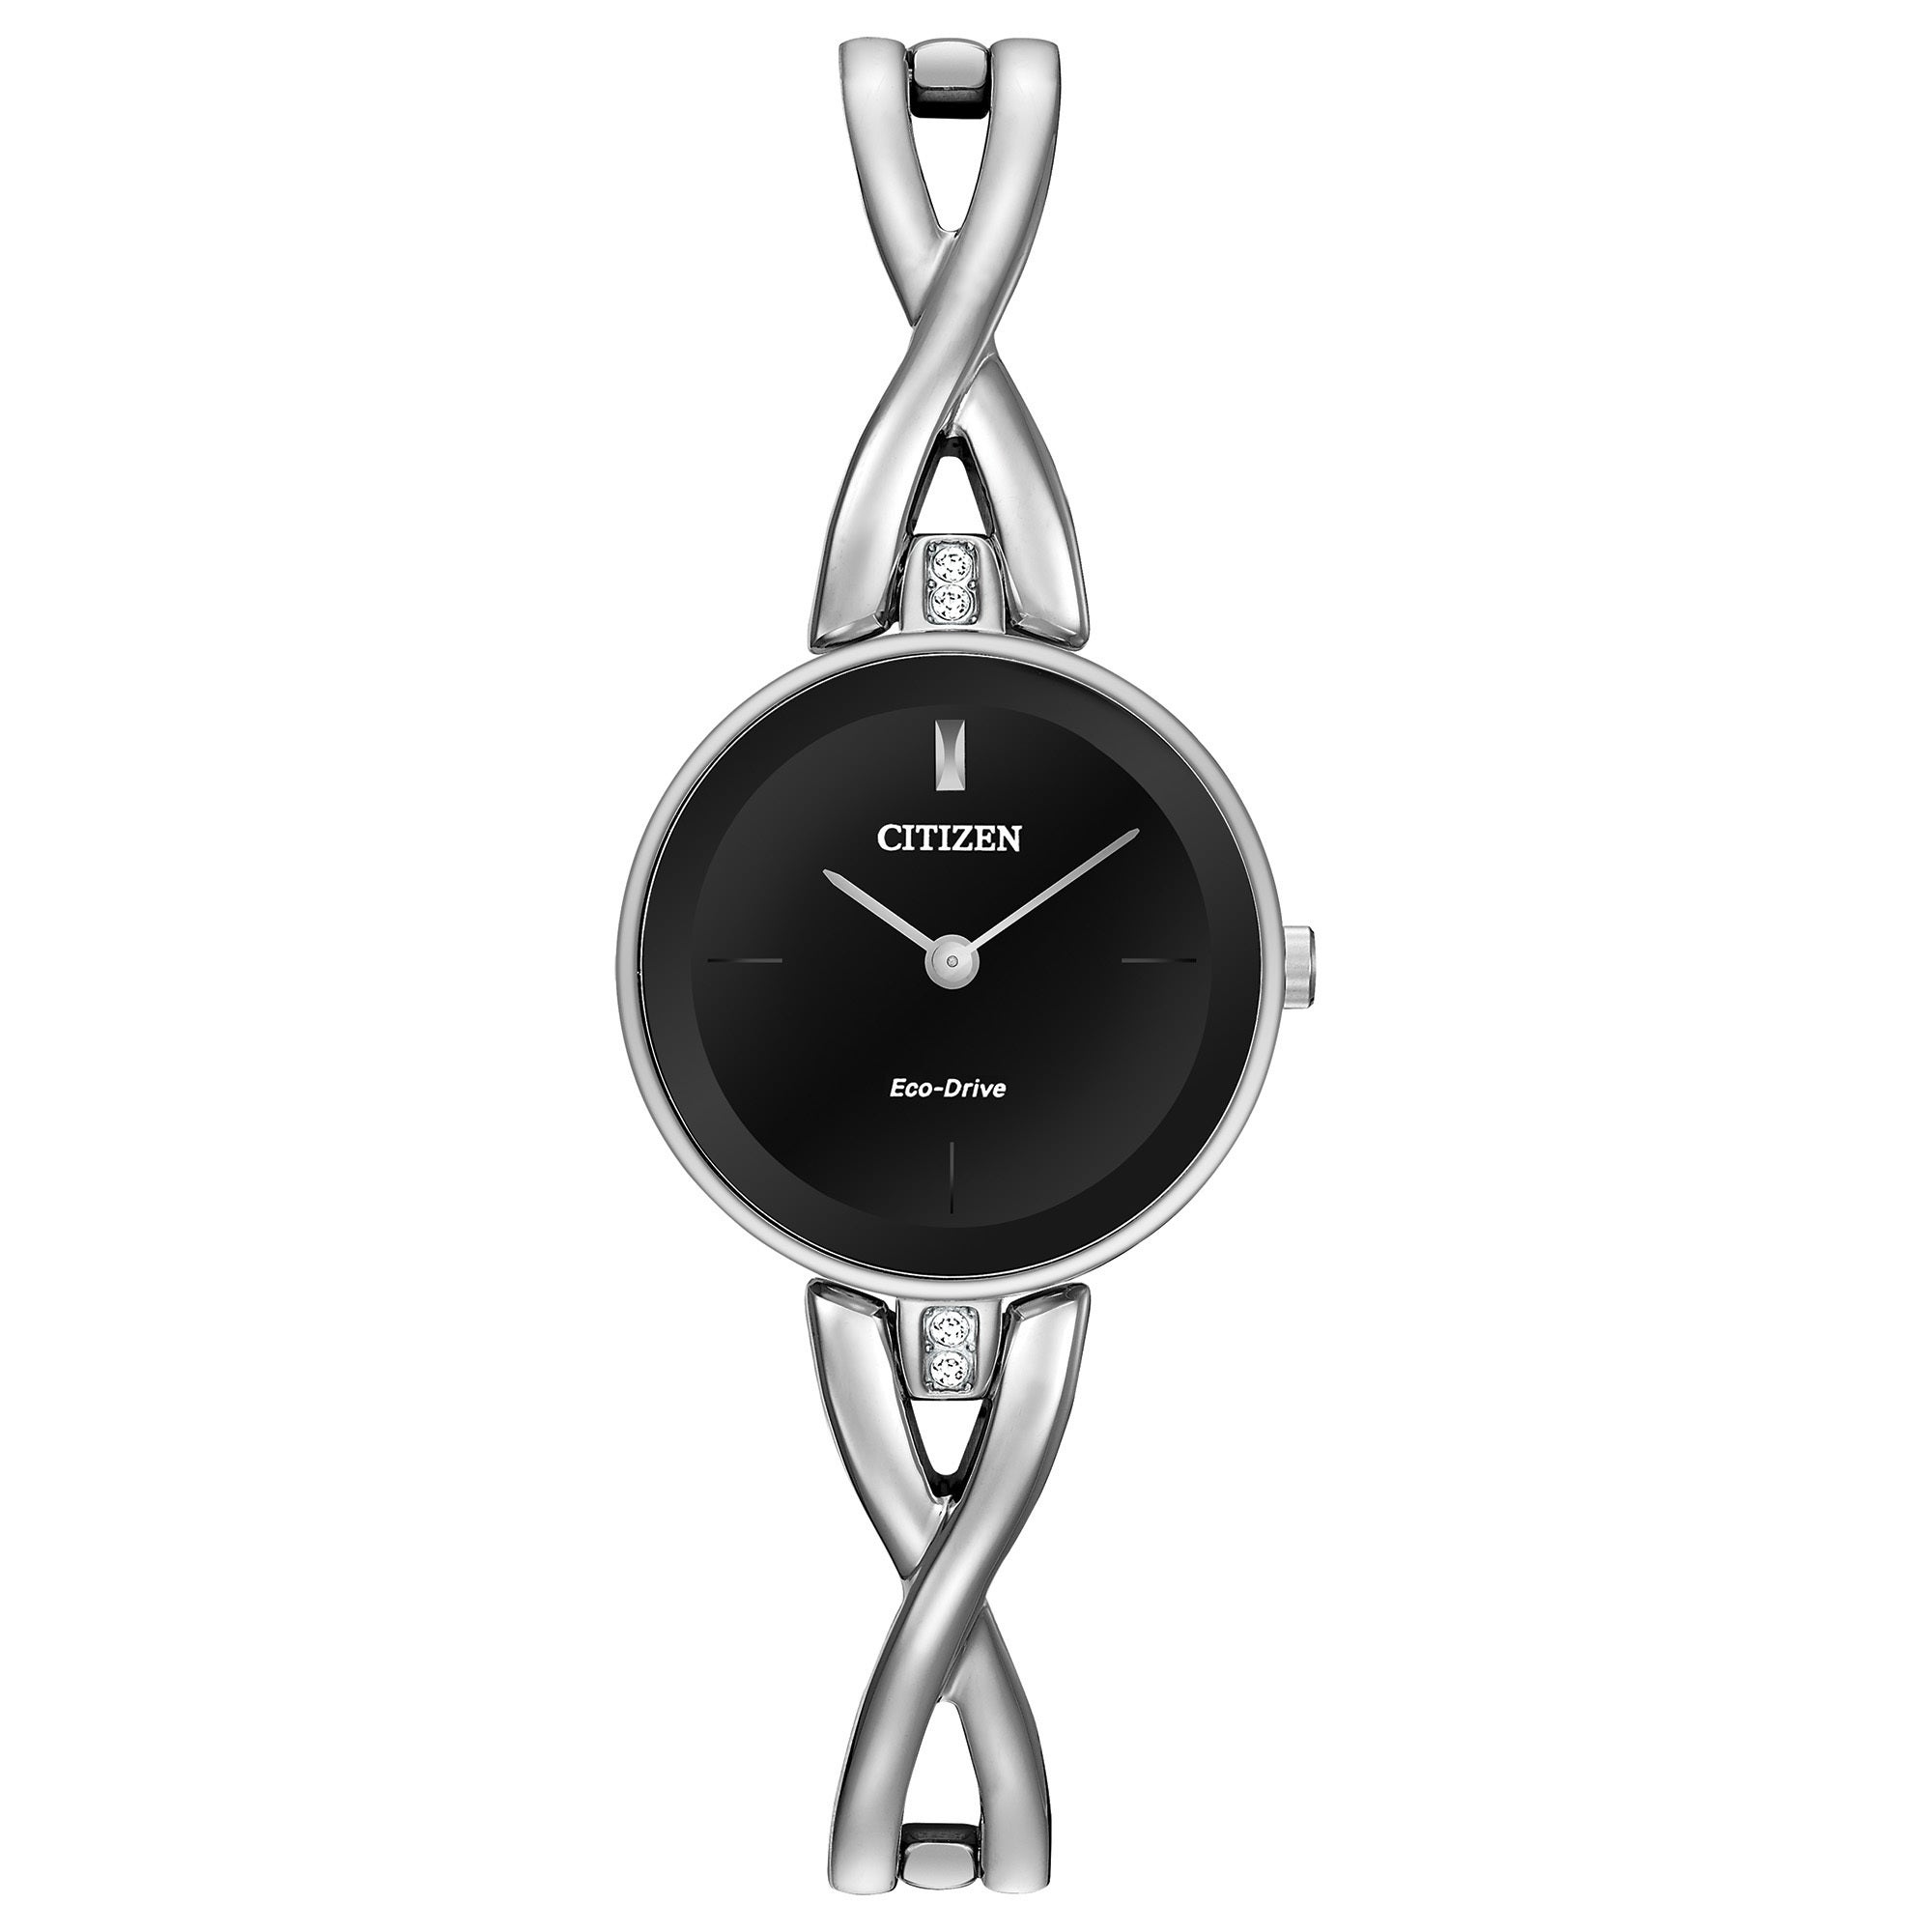 d9424f64ff4832 Shop Citizen Women's EX1420-50E Stainless Steel Silhouette Eco-Drive Black  Dial Watch - Free Shipping Today - Overstock - 11690948